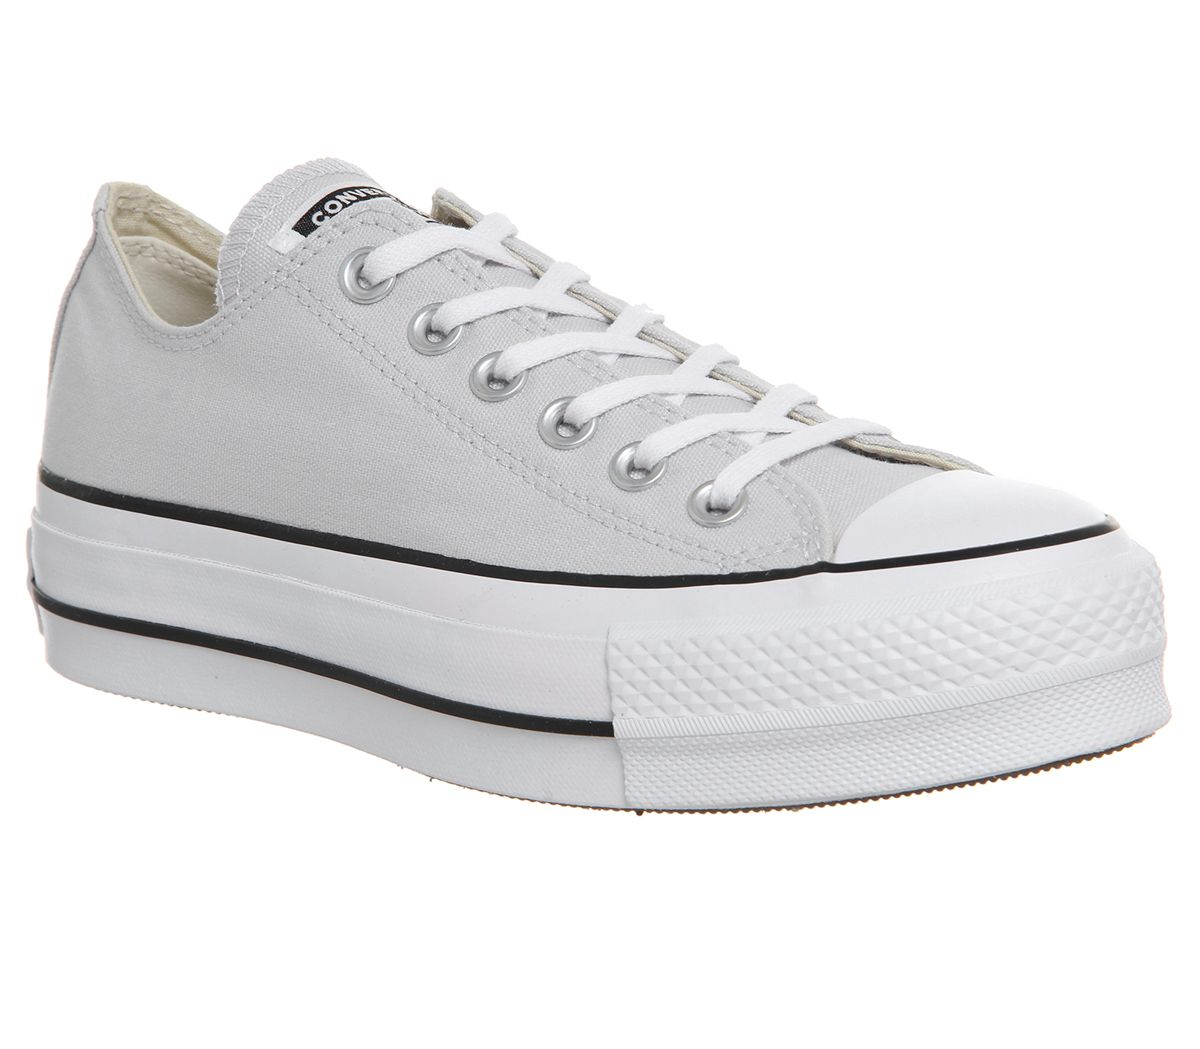 Converse Converse All Star Lift Low Trainers, White